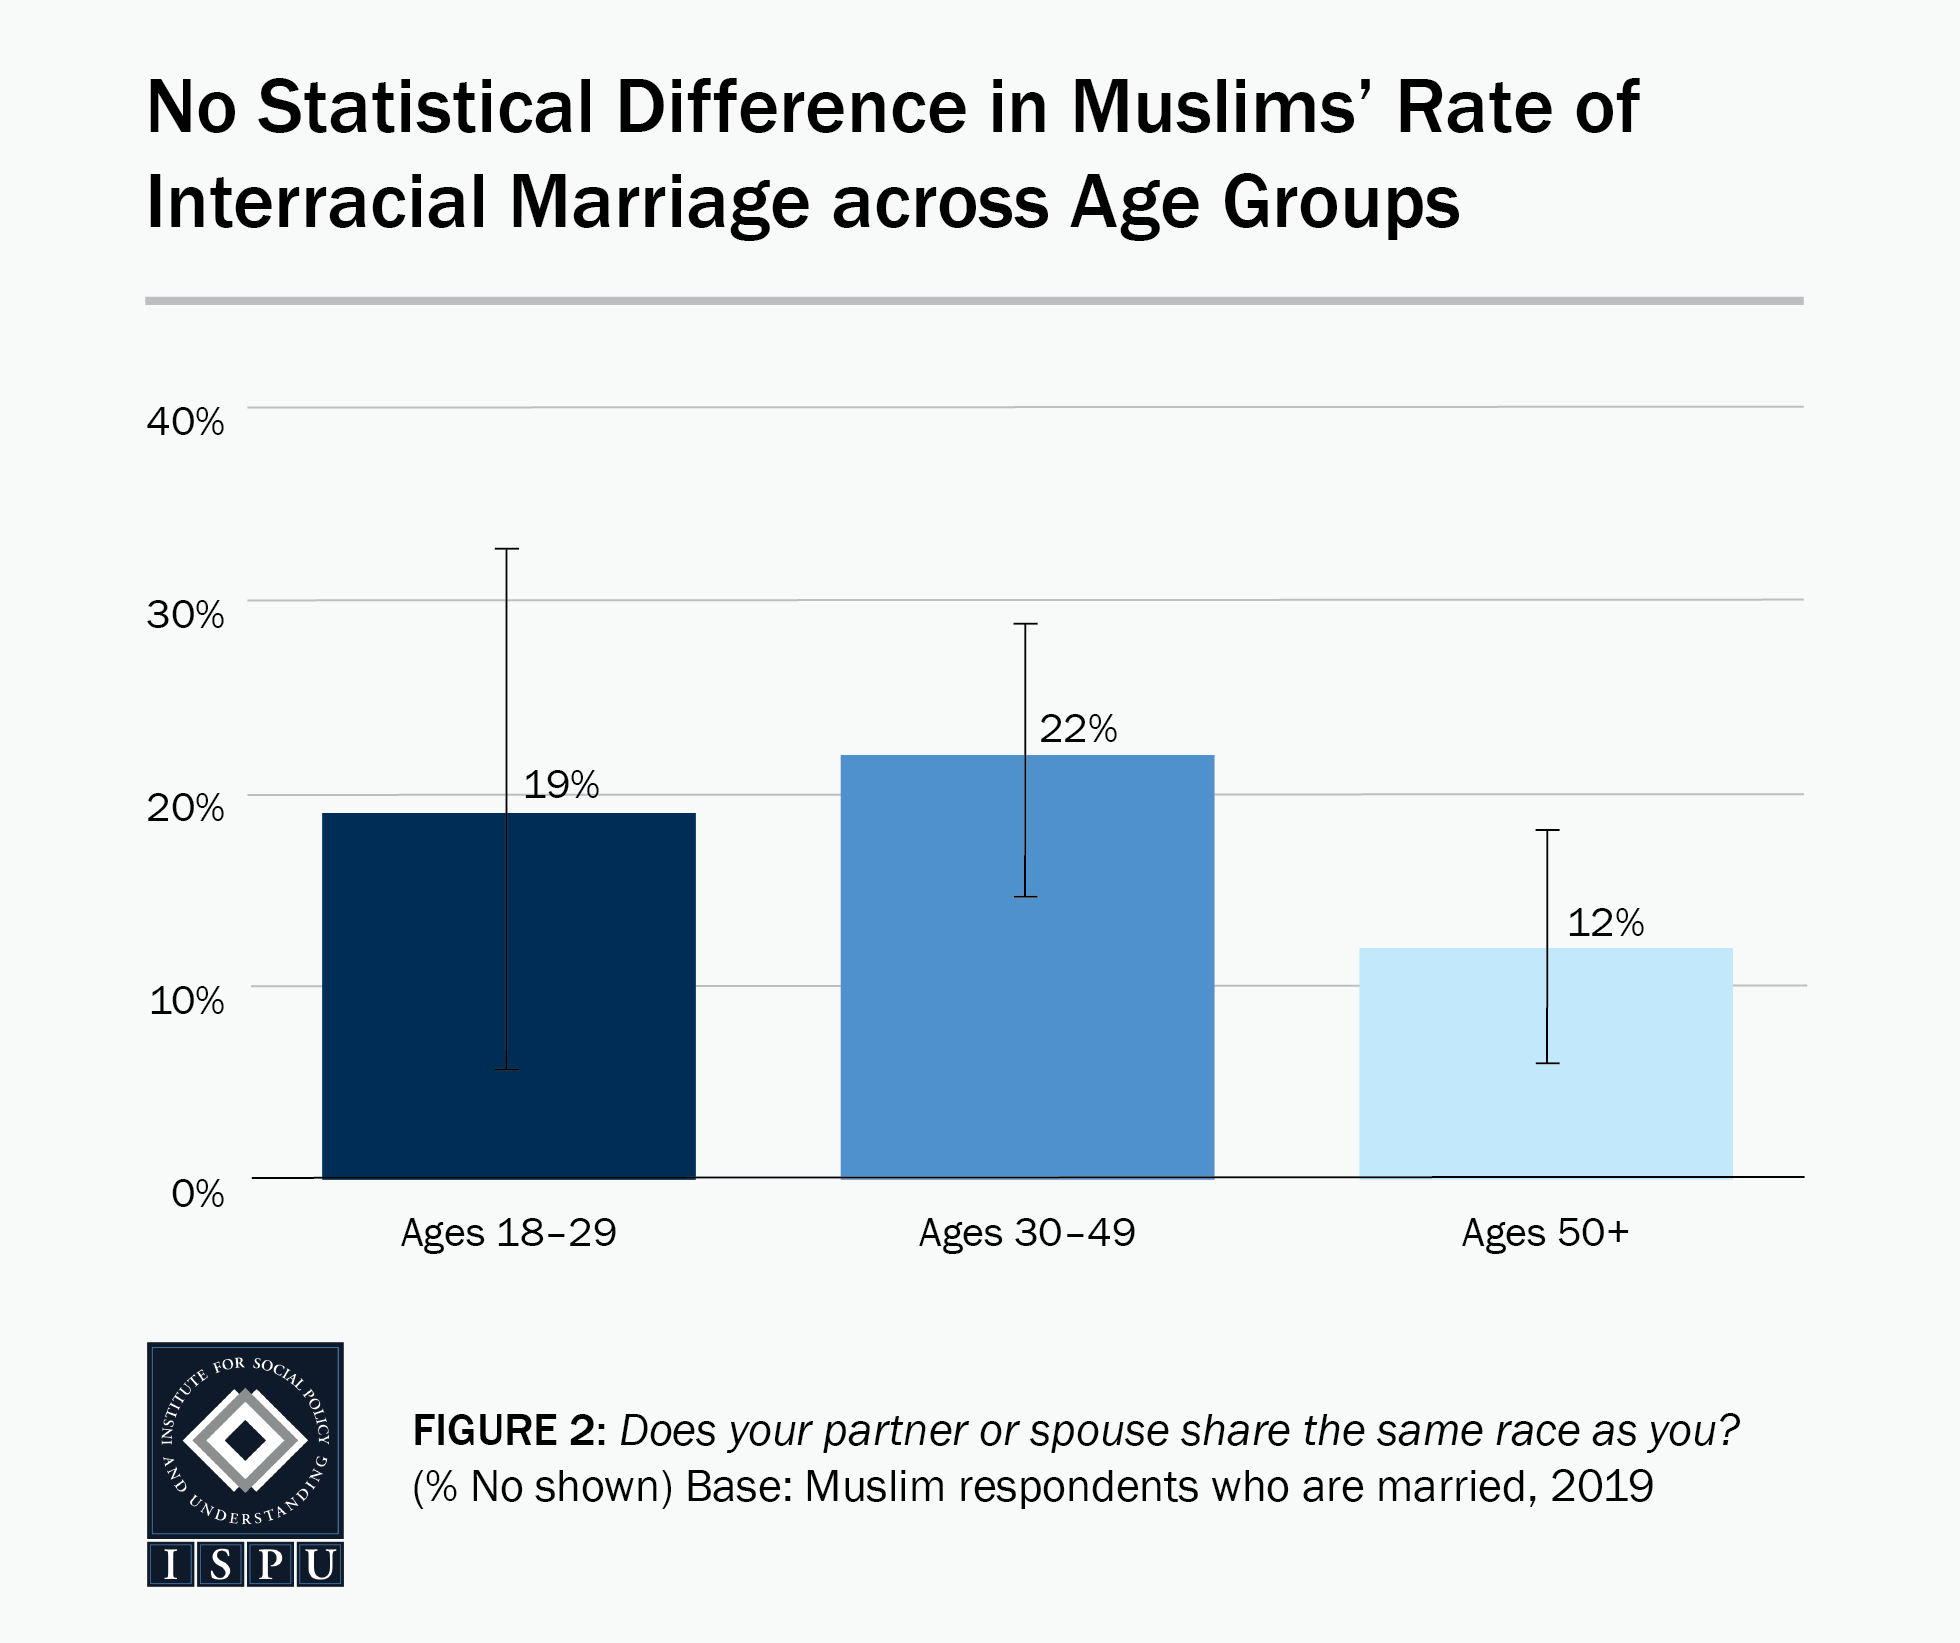 Figure 2: A bar graph showing that there is no statistical difference in Muslims' rate of interracial marriage across age groups